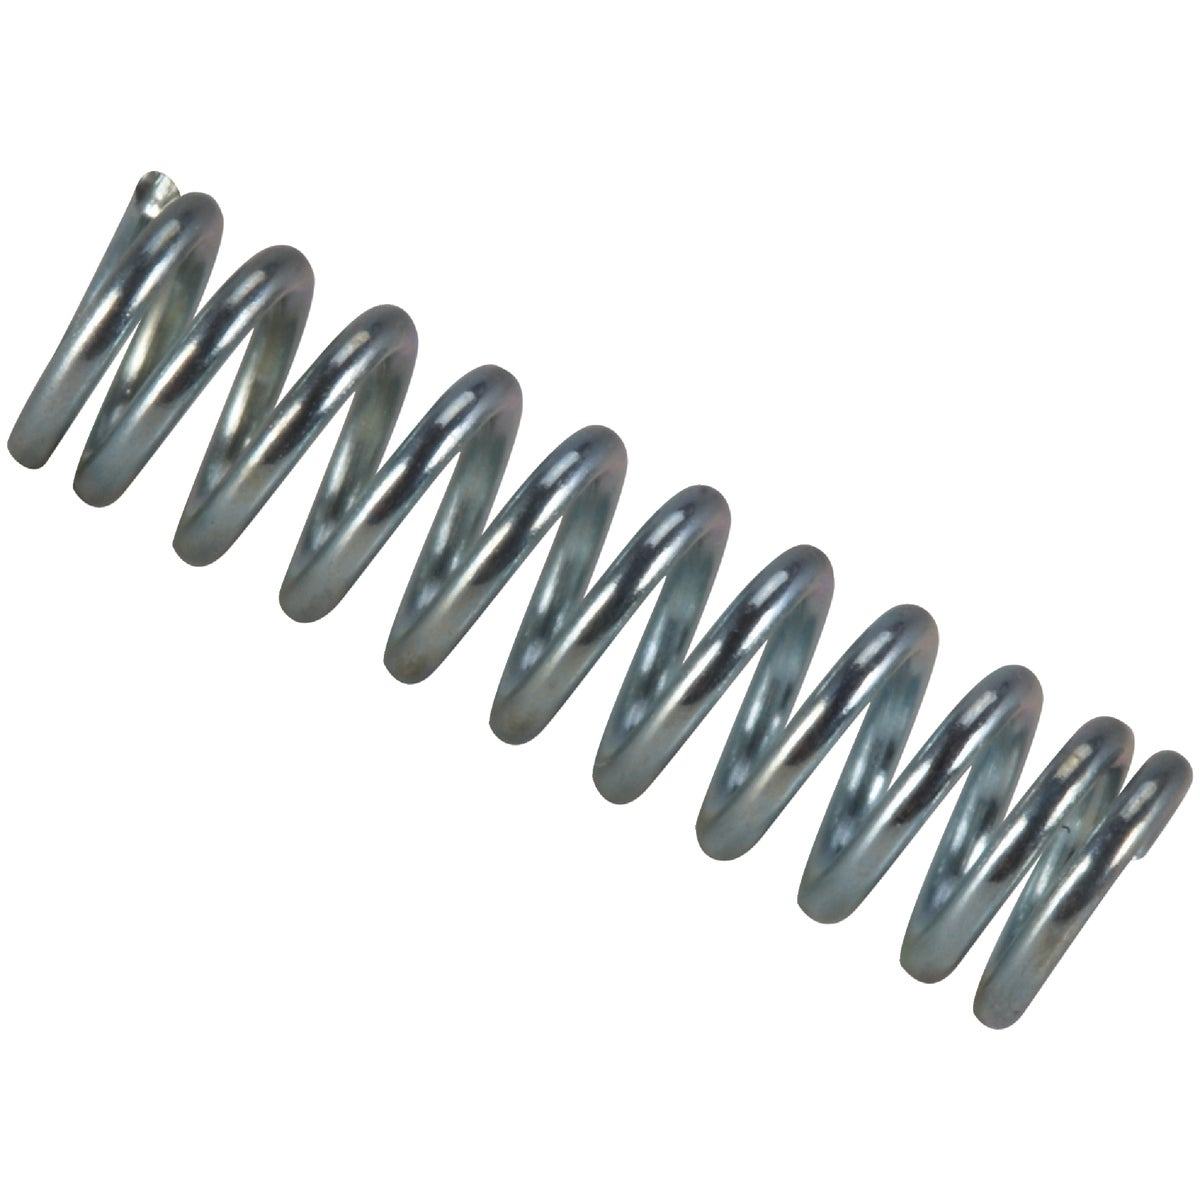 COMPRESSION SPRING - C-802 by Century Spring Corp